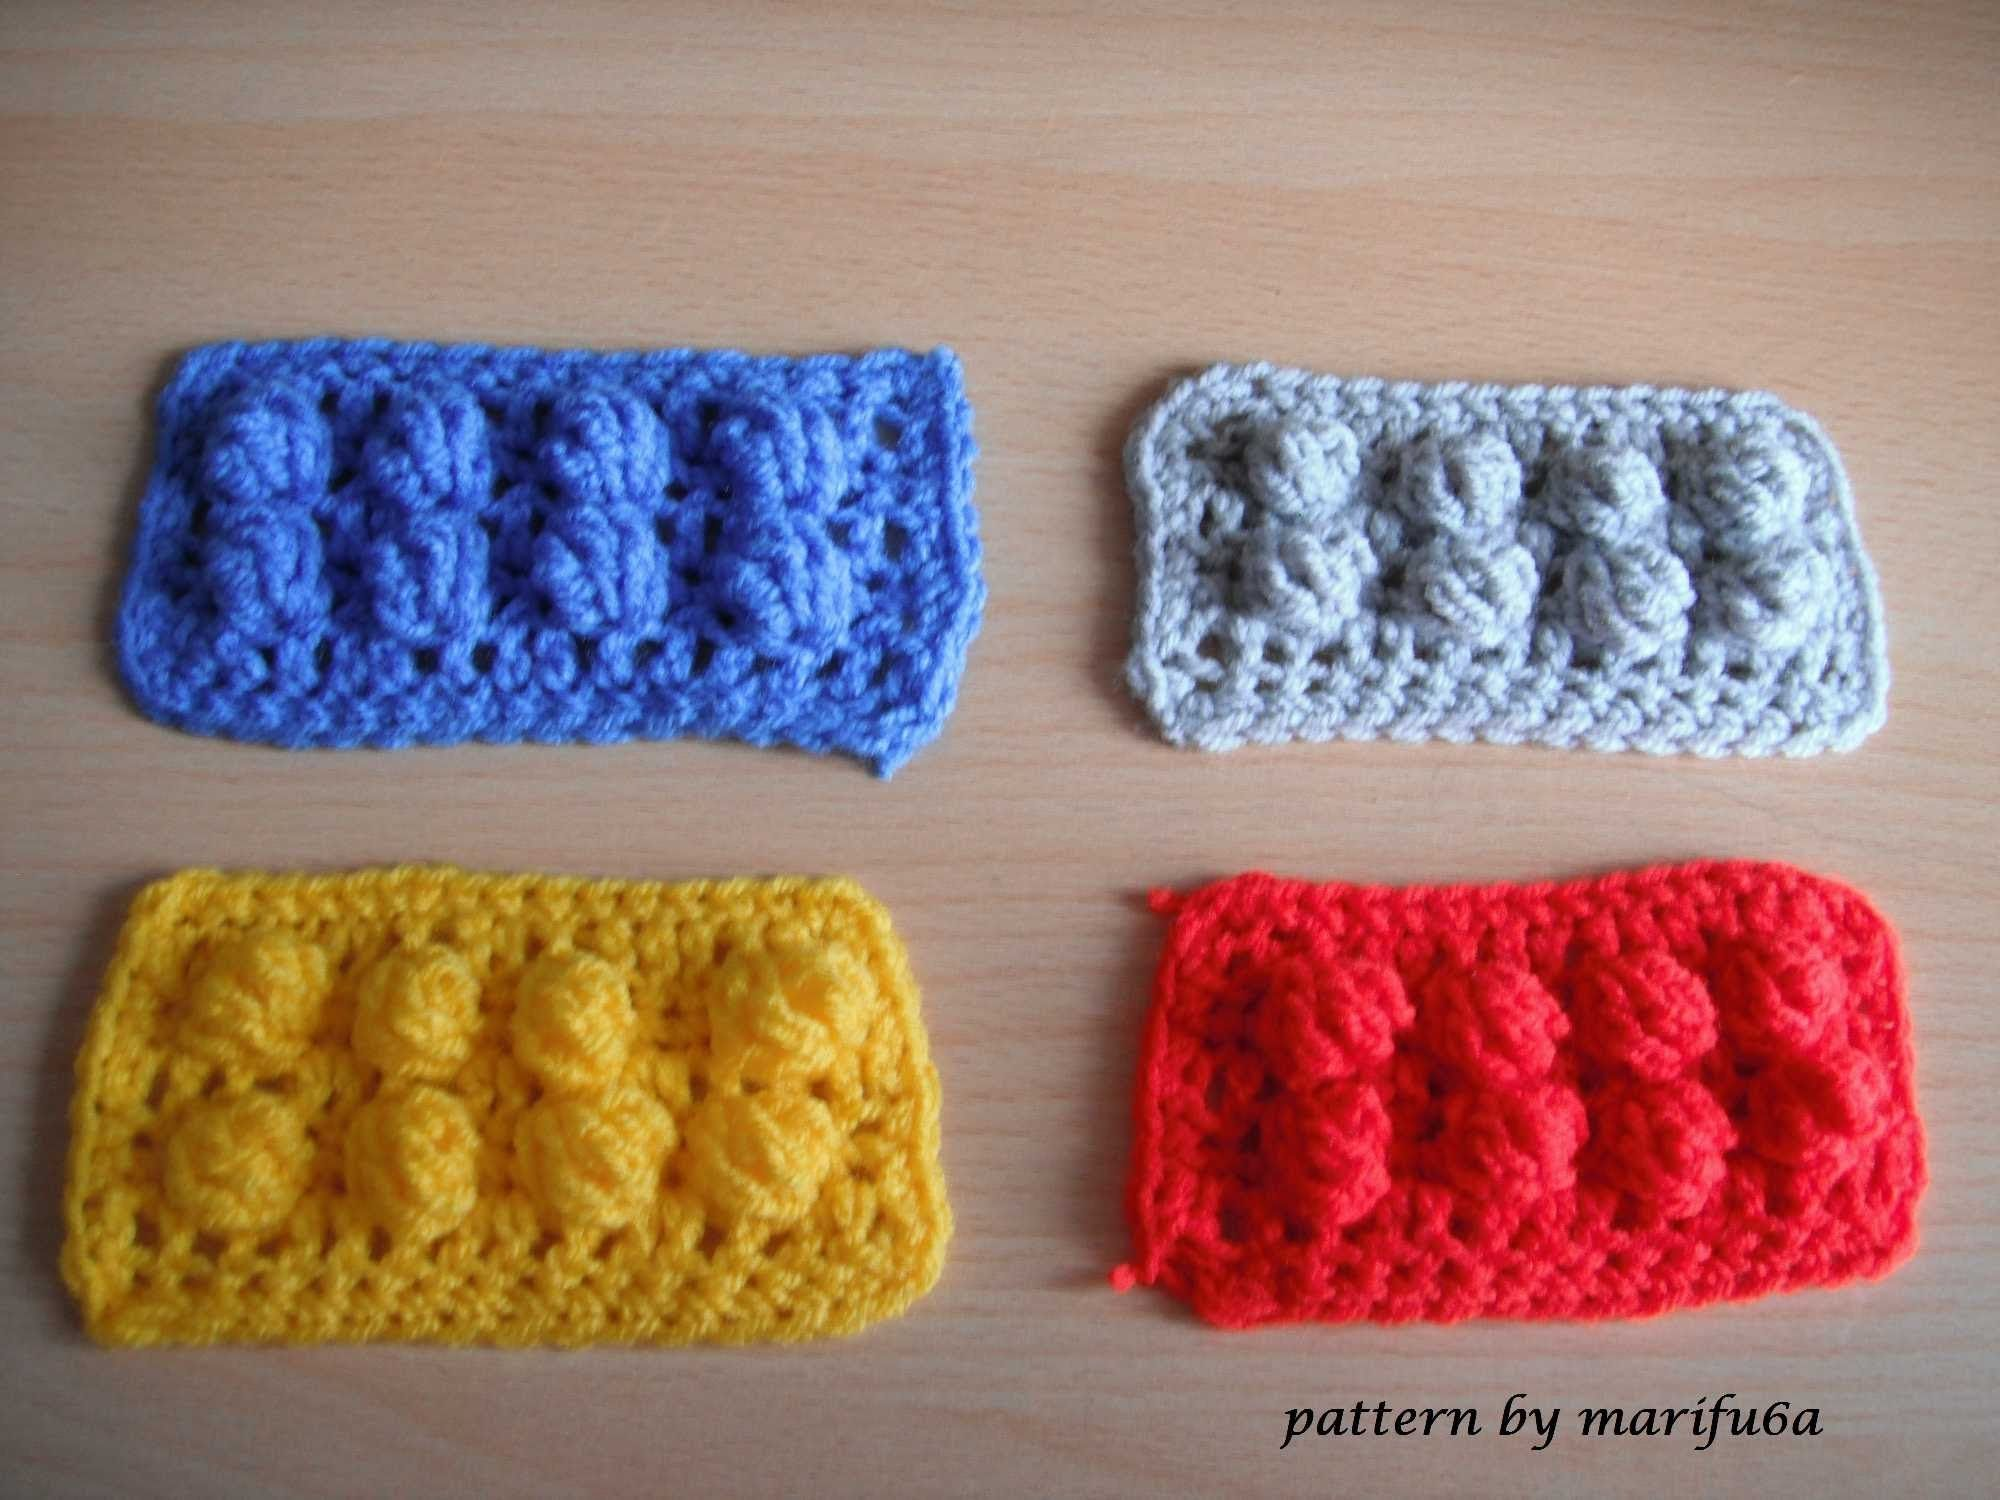 How to crochet lego blanket free pattern tutorial haga ganchillo how to crochet lego blanket free pattern tutorial haga ganchillo lego bankloansurffo Image collections